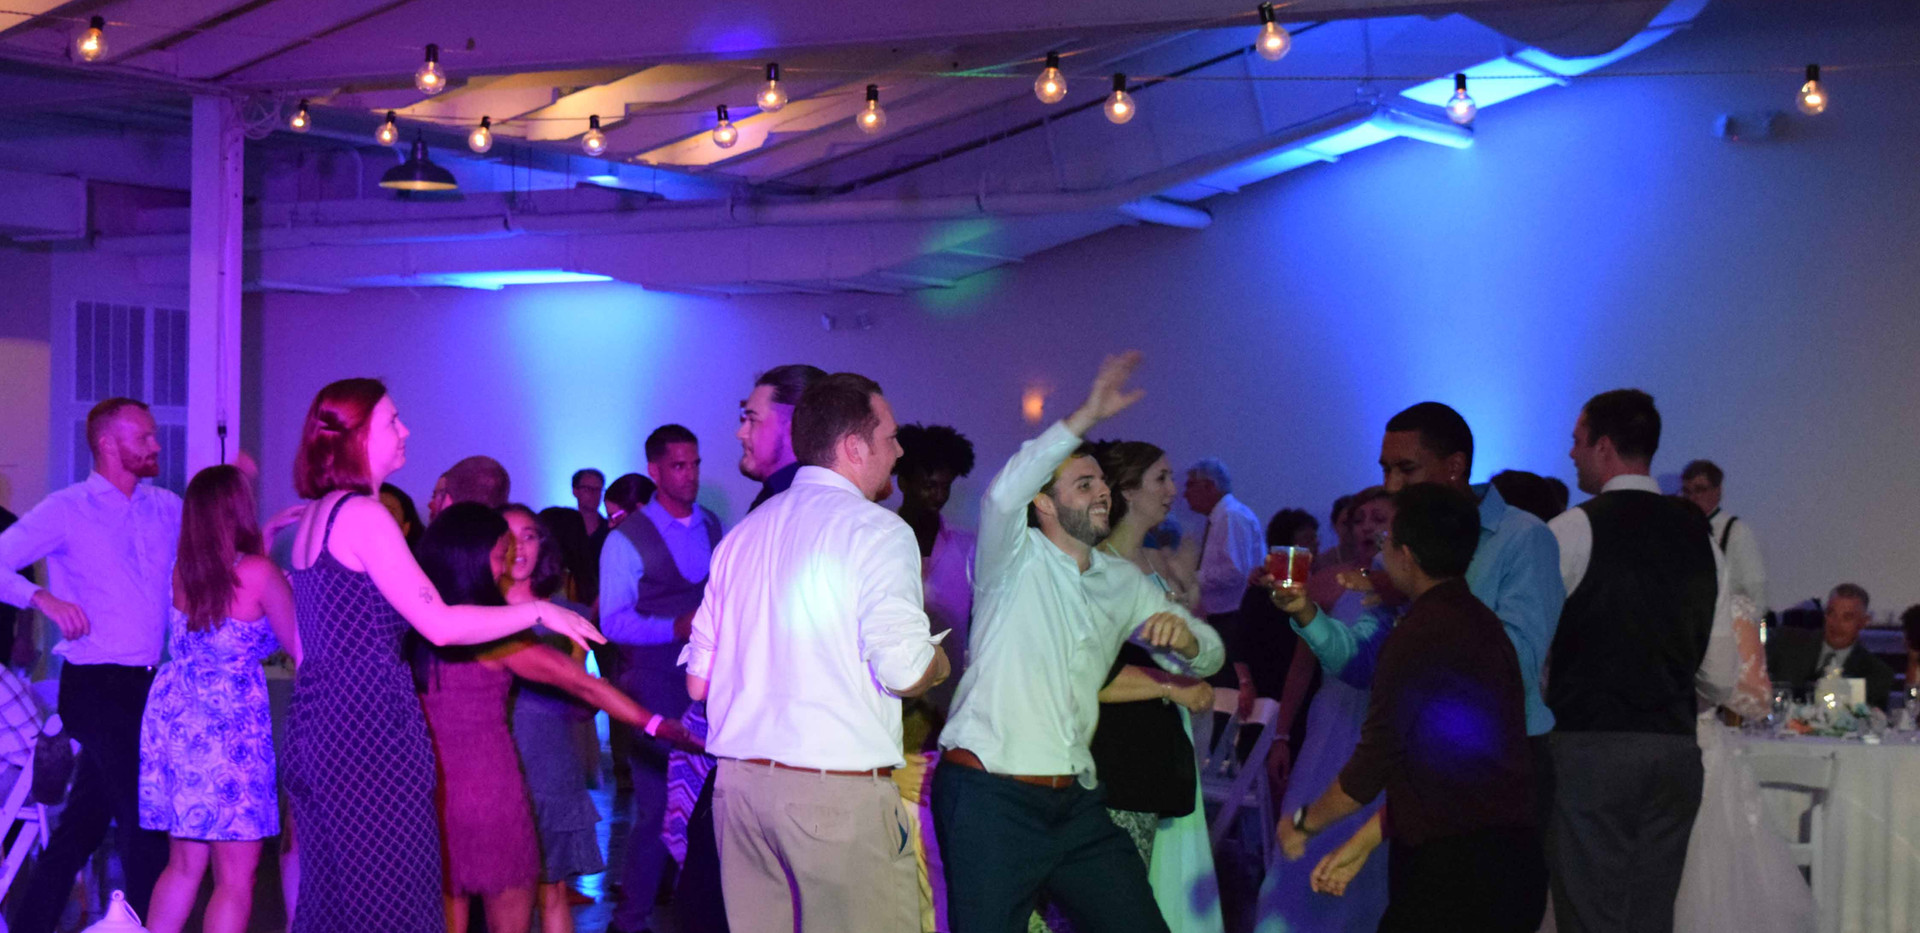 Wedding DJ Service in Rocky Point NC offering an affordable wedding dj.